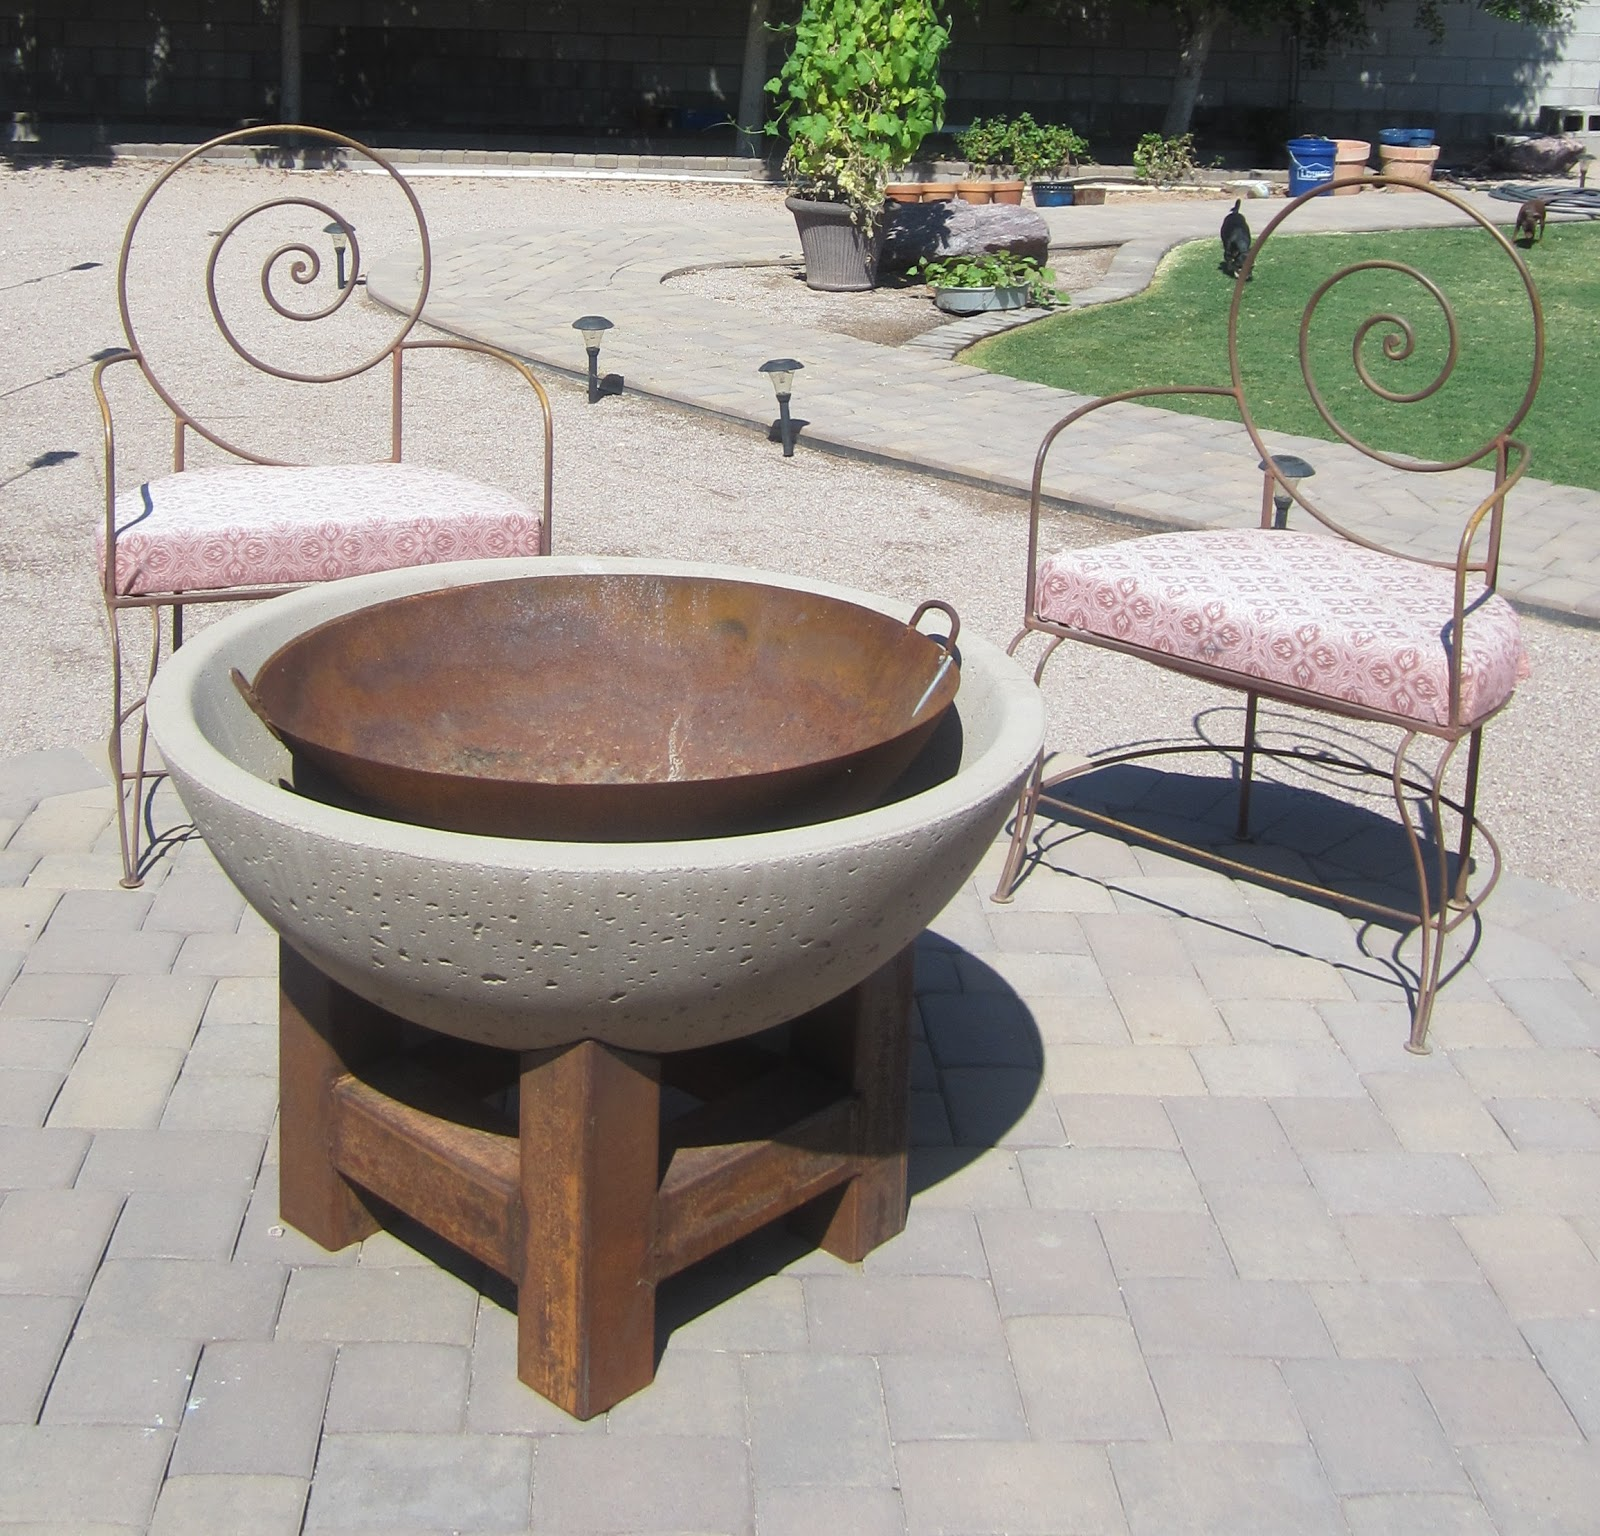 Ink rust and sawdust diy fire pit for How do i build a fire pit